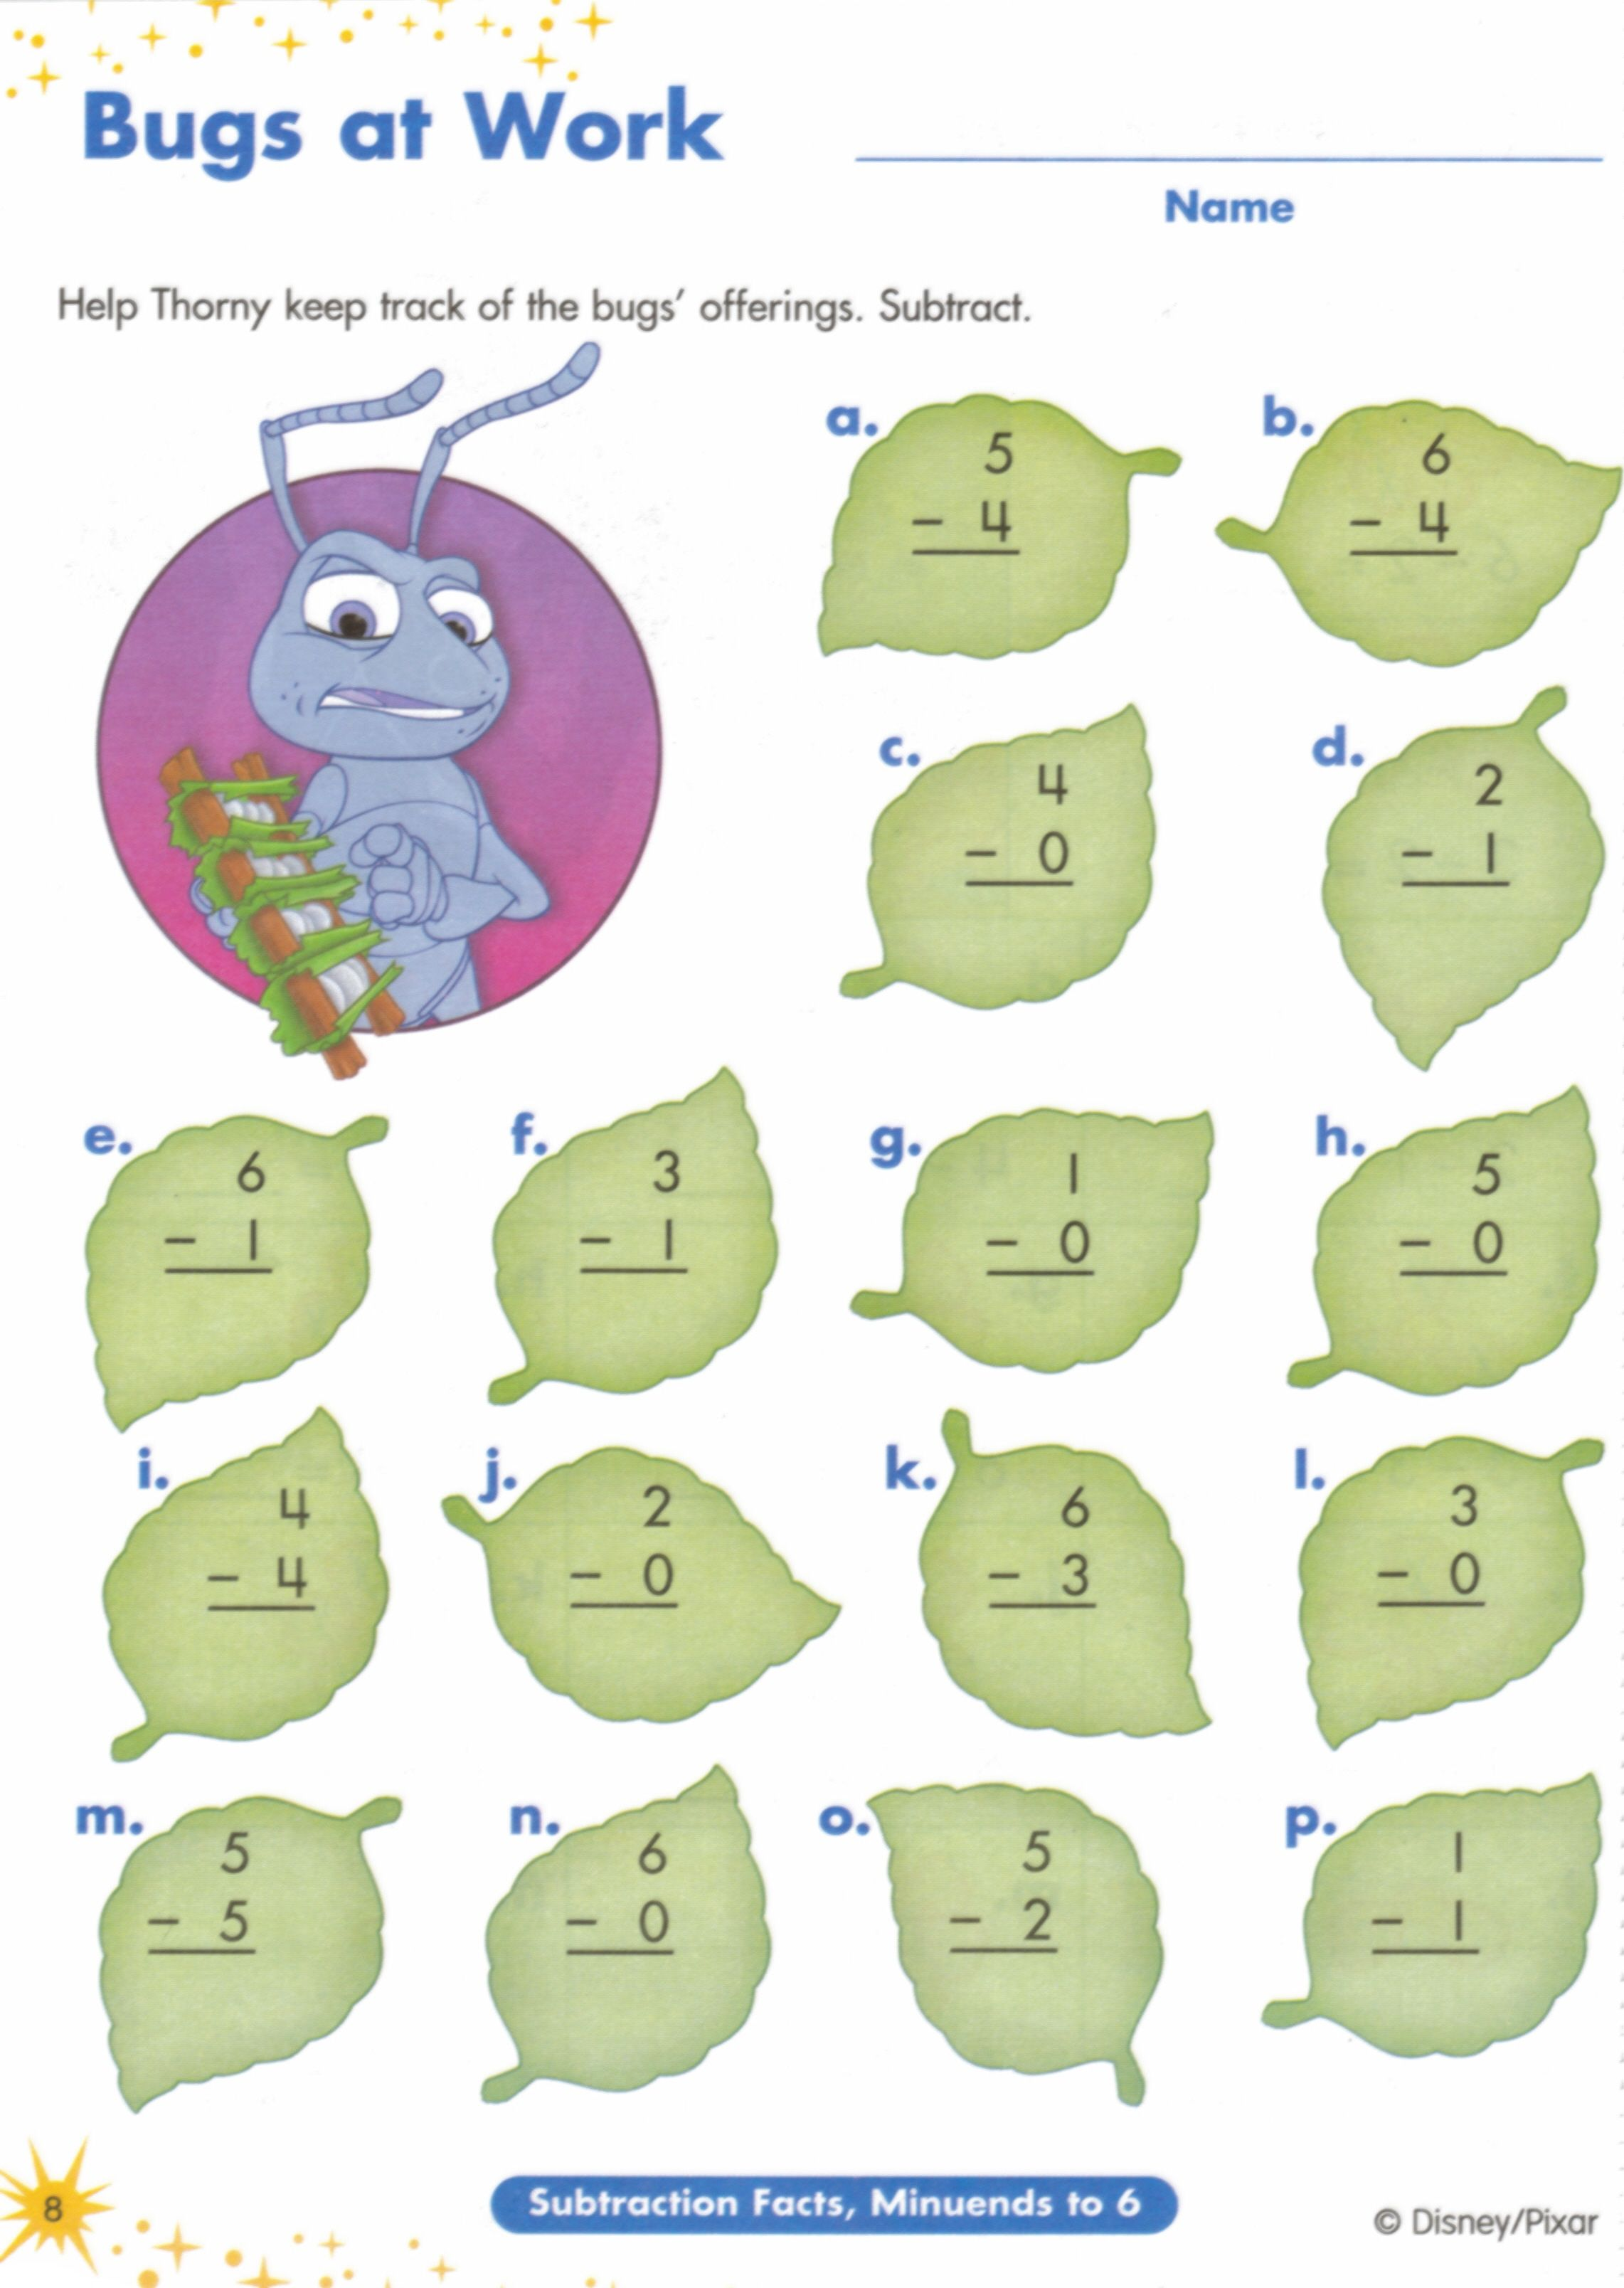 Aldiablosus  Sweet  Images About Worksheets On Pinterest  Fun Facts For Kids  With Glamorous  Images About Worksheets On Pinterest  Fun Facts For Kids Earth Day Worksheets And Jungles With Endearing Free Worksheets For Year  Also Rhymes Worksheet In Addition Basic Math Worksheets With Answers And Quotation Marks Worksheet Rd Grade As Well As Rotation Worksheets Grade  Additionally Algebra  Fun Worksheets From Pinterestcom With Aldiablosus  Glamorous  Images About Worksheets On Pinterest  Fun Facts For Kids  With Endearing  Images About Worksheets On Pinterest  Fun Facts For Kids Earth Day Worksheets And Jungles And Sweet Free Worksheets For Year  Also Rhymes Worksheet In Addition Basic Math Worksheets With Answers From Pinterestcom